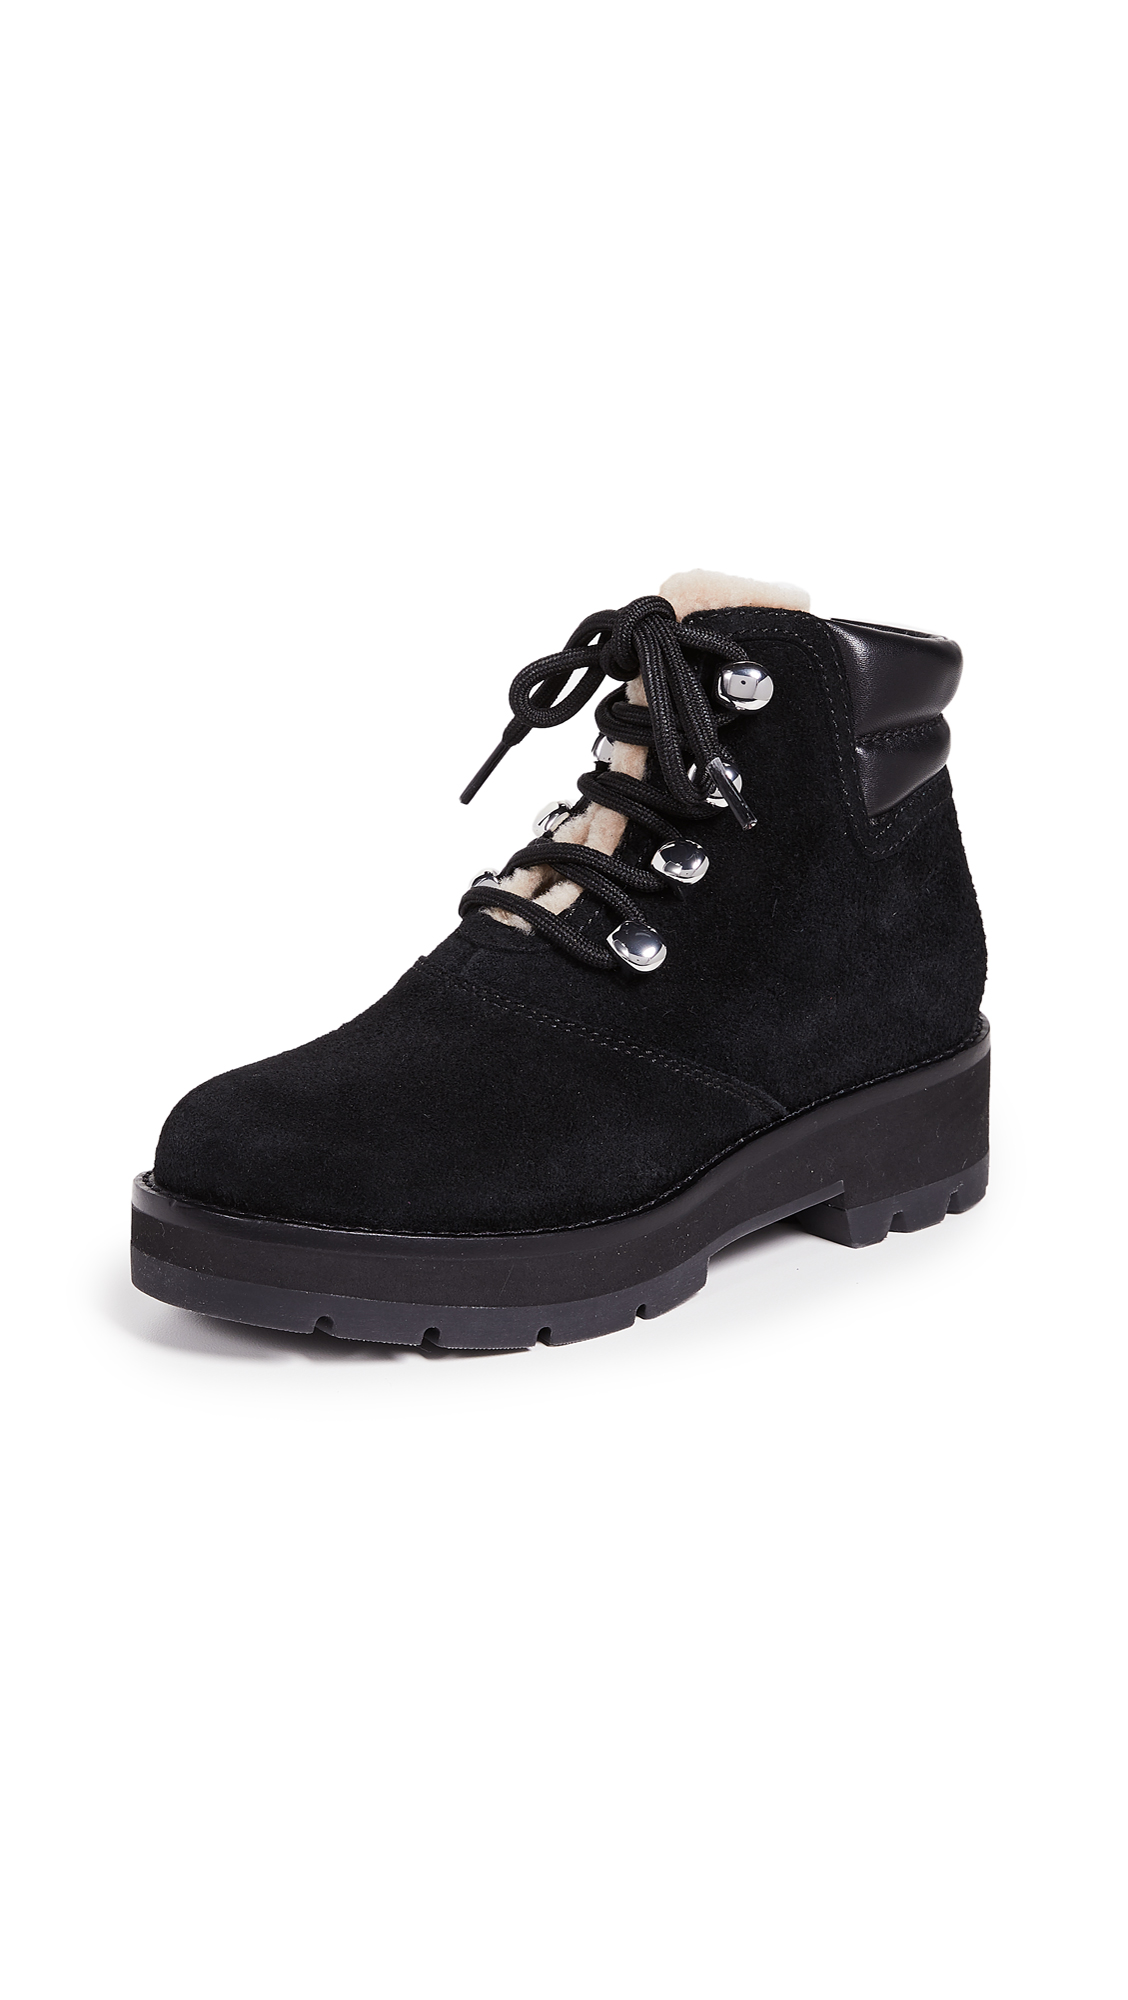 3.1 Phillip Lim Dylan Hiking Boots - Black/Natural